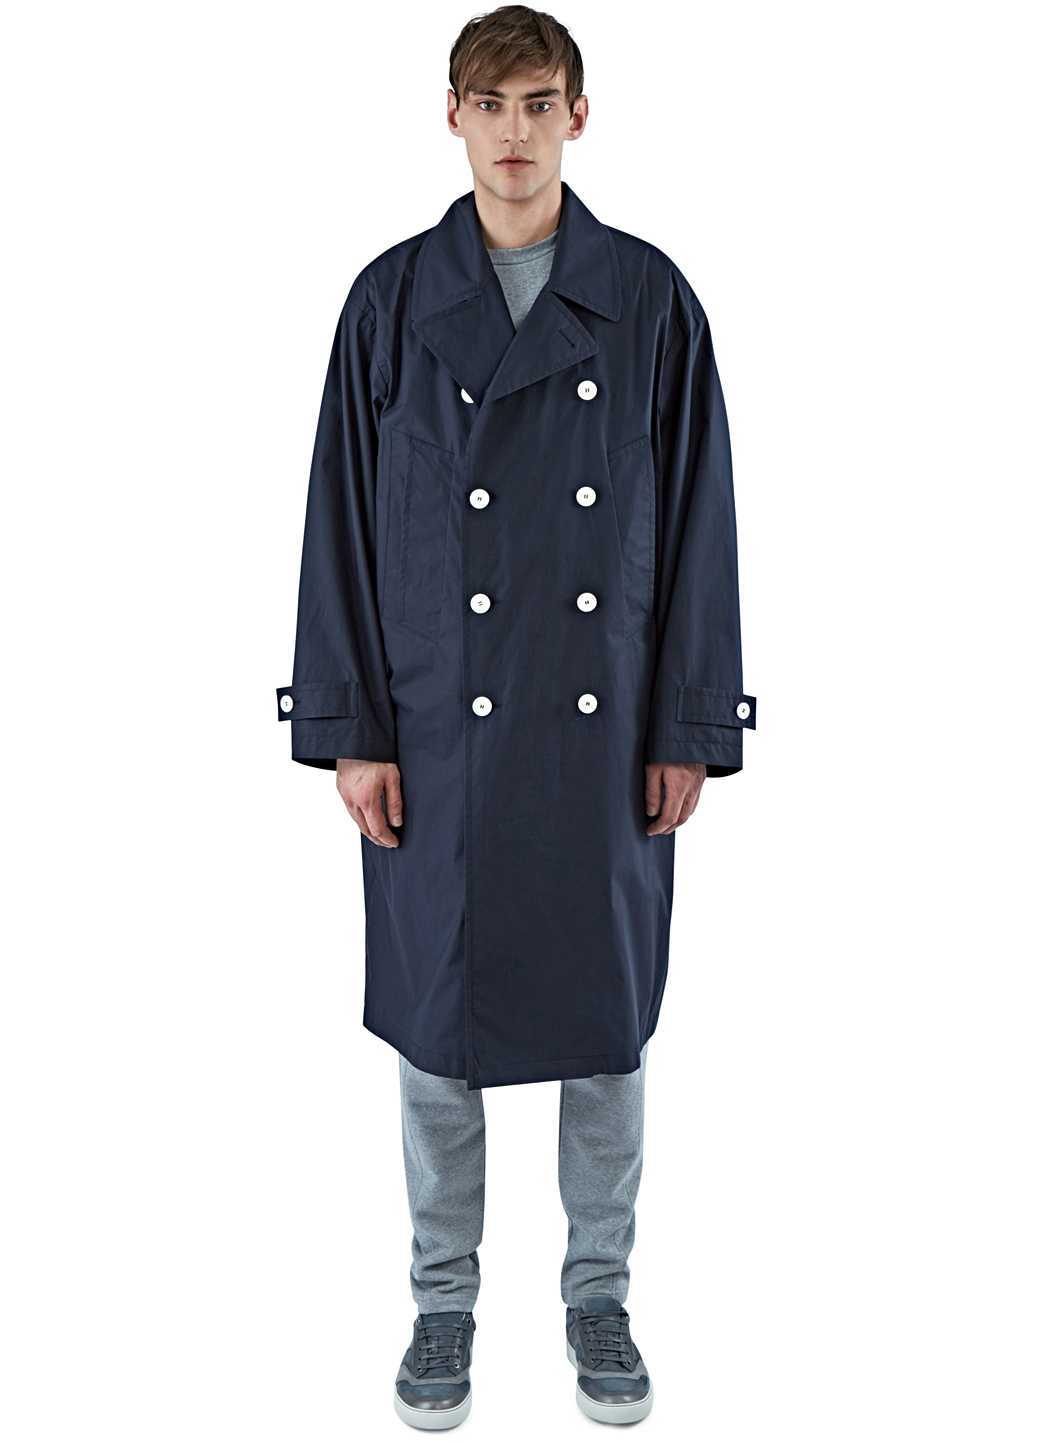 Sport a classically cool look with men's trench coats from Banana Republic. Add an Air of Mystery to Your Wardrobe. Experience the allure of a classic style with men's trench coats from Banana Republic.